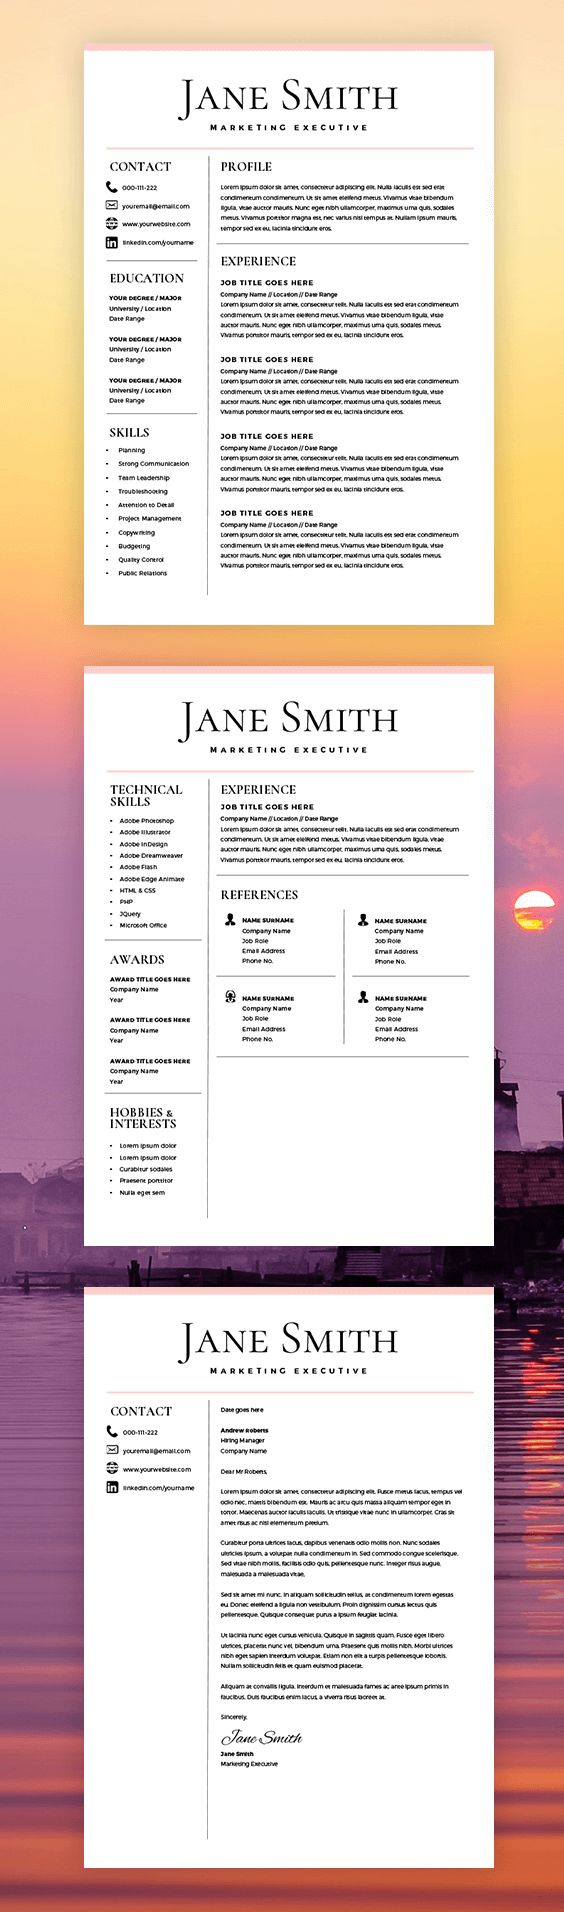 resume template cv template free cover letter ms word on mac pc - Best Resume Word Template